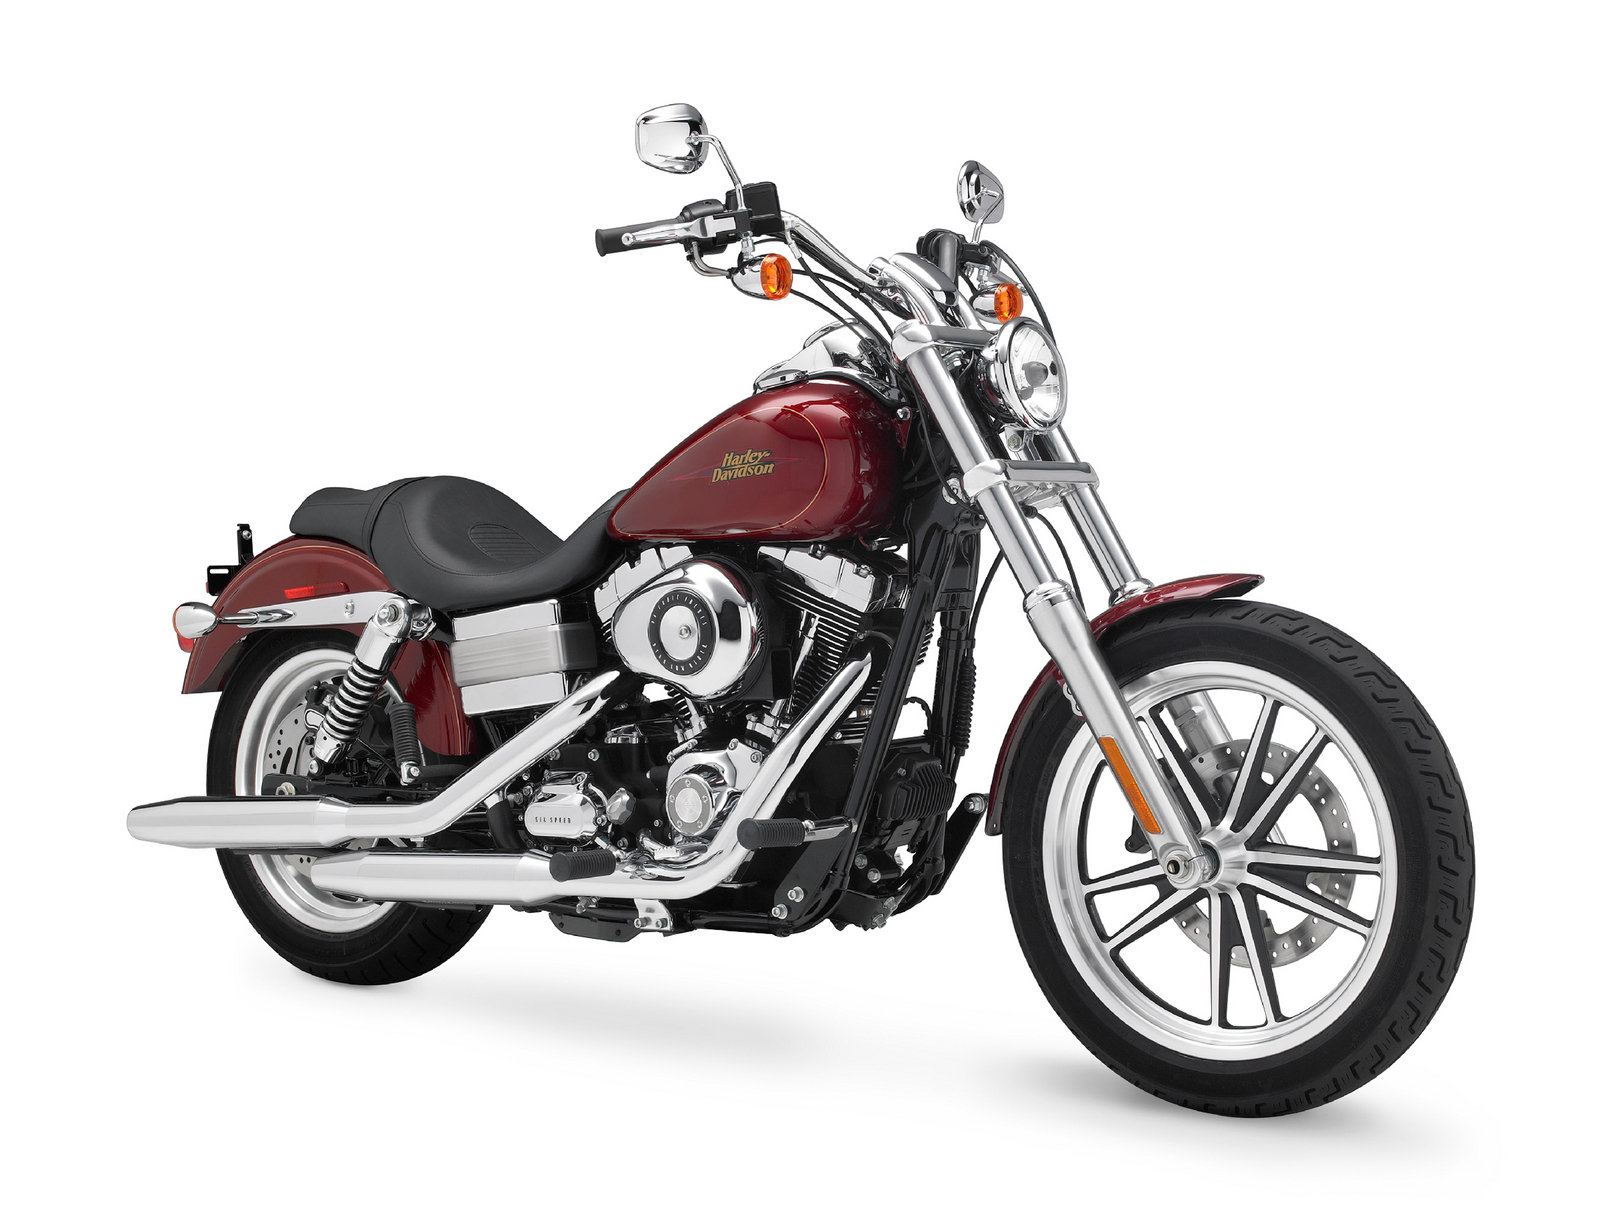 2009 dyna low rider review